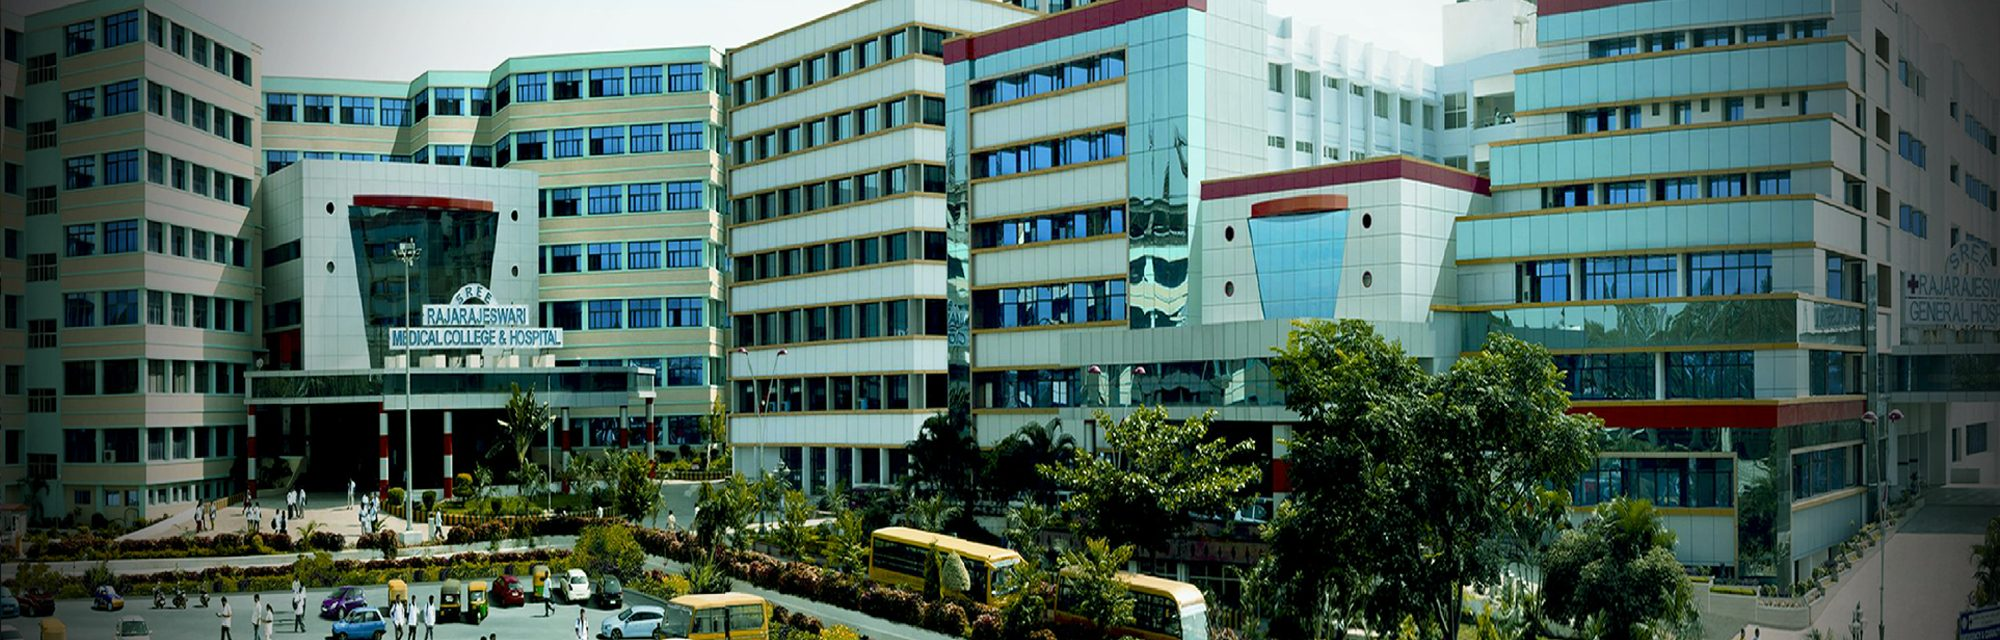 Rajarajeswari Medical College and Hospital in Bangalore-Karnataka